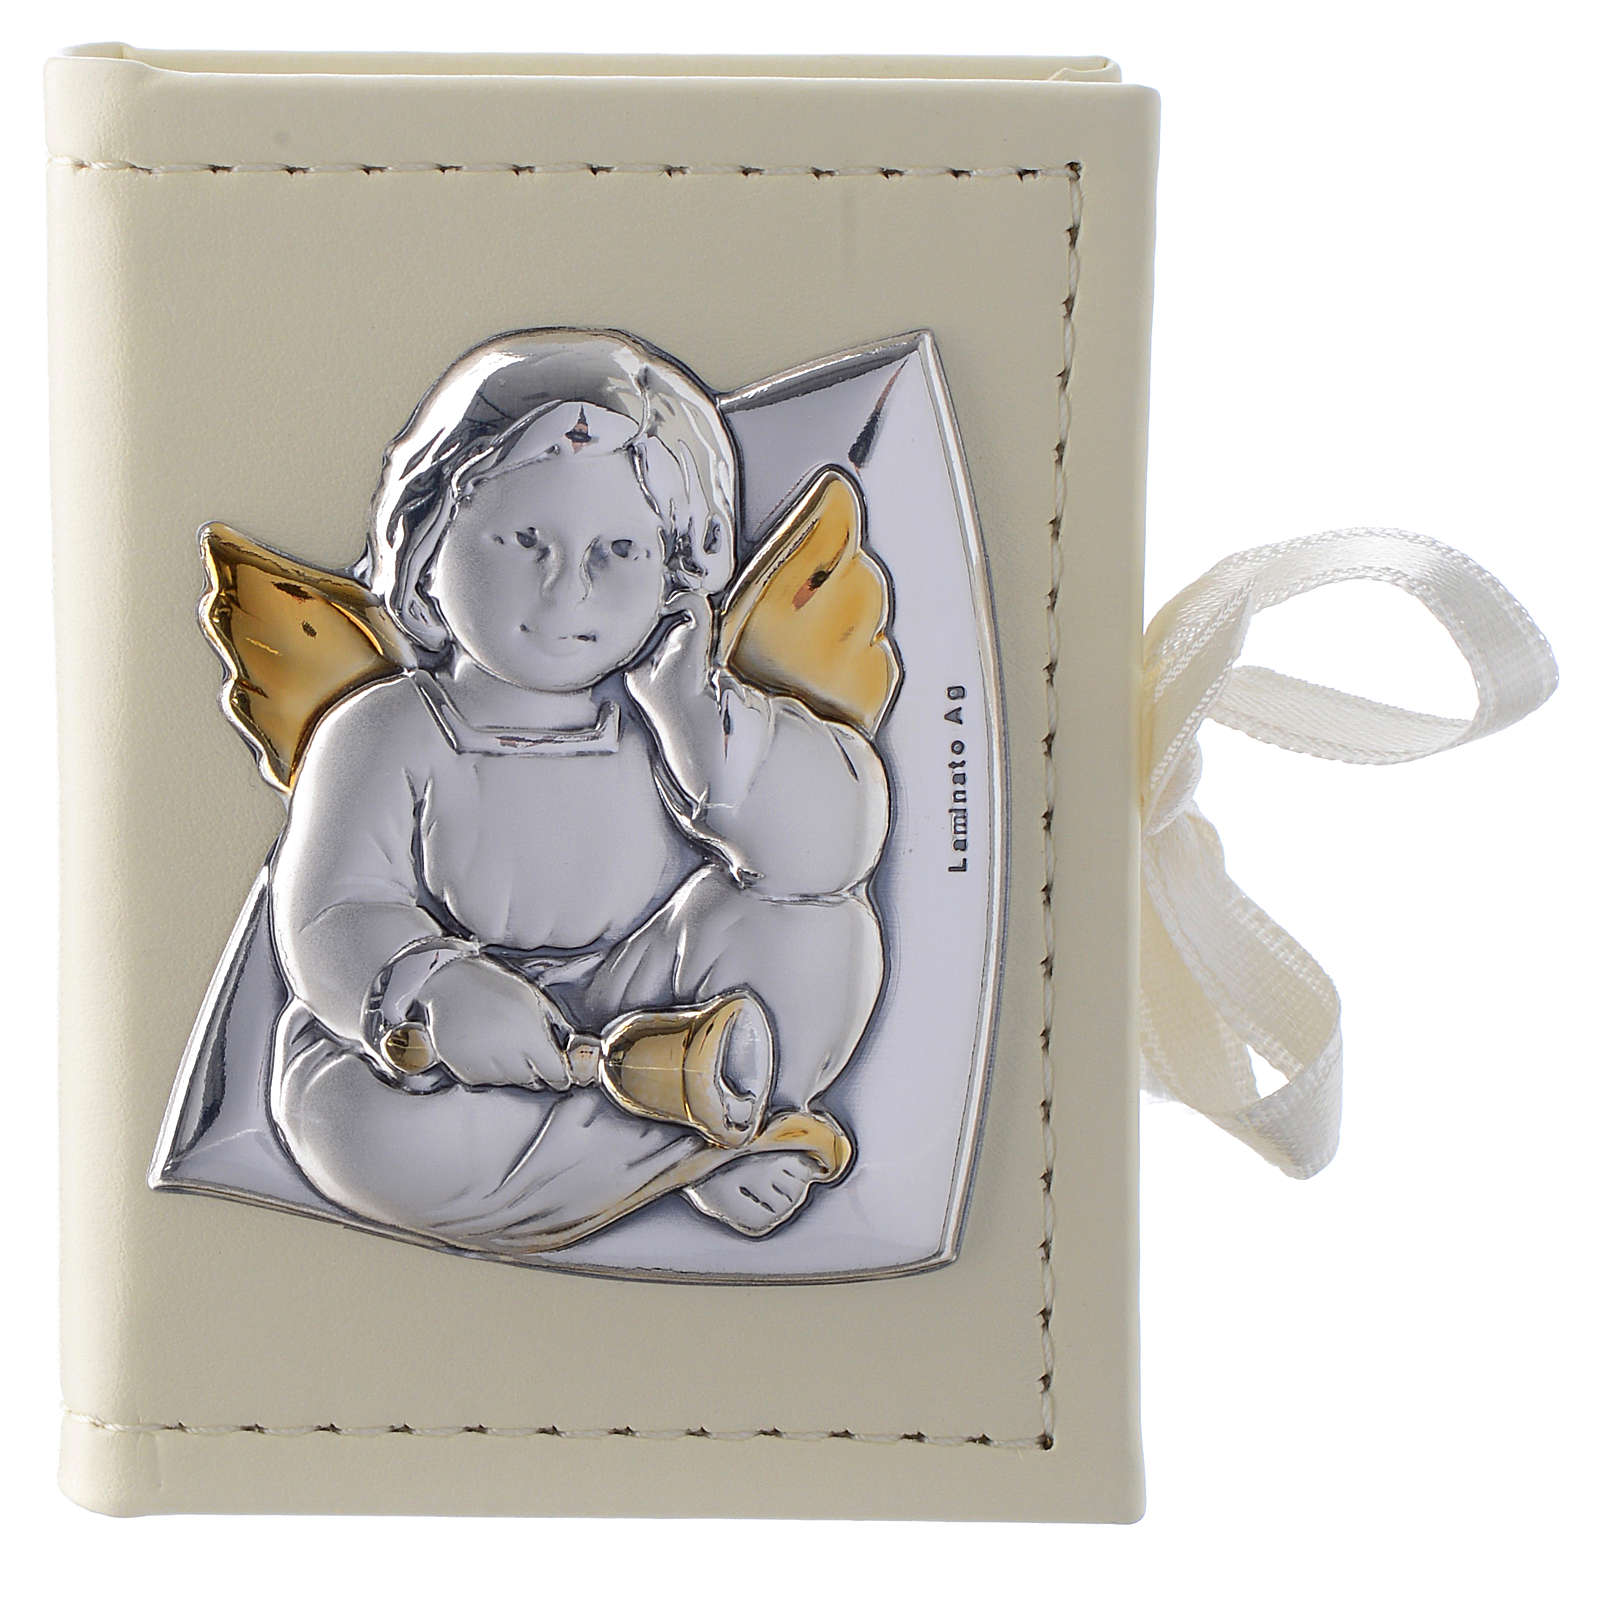 Baptism rosary holder in leather imitation with Angel image in double laminated silver 3